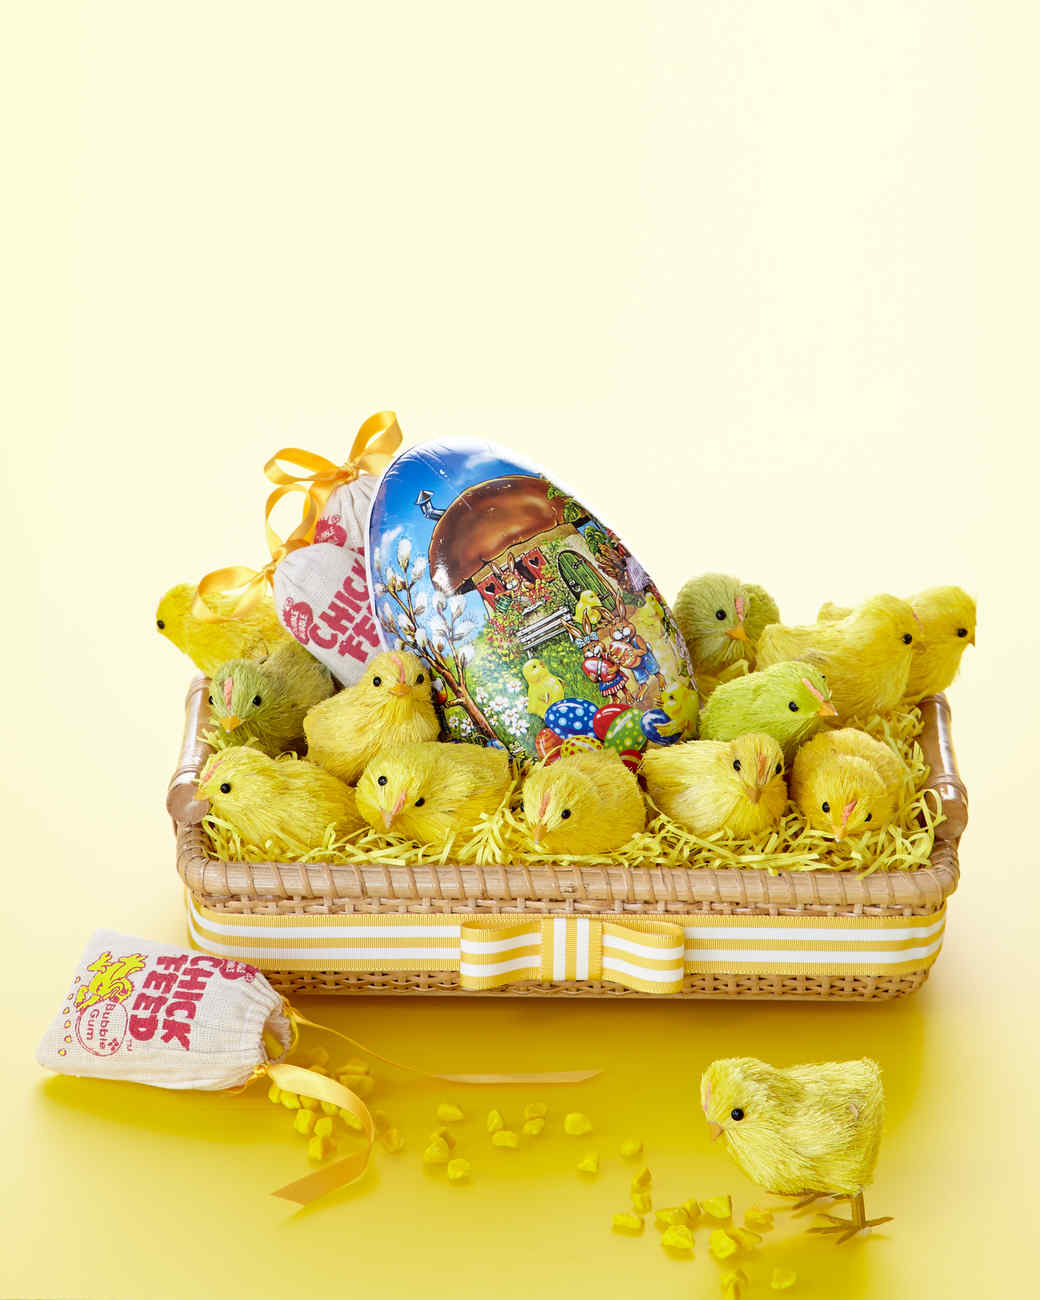 easter-centerpiece-yellow-1603-d111156-0414.jpg